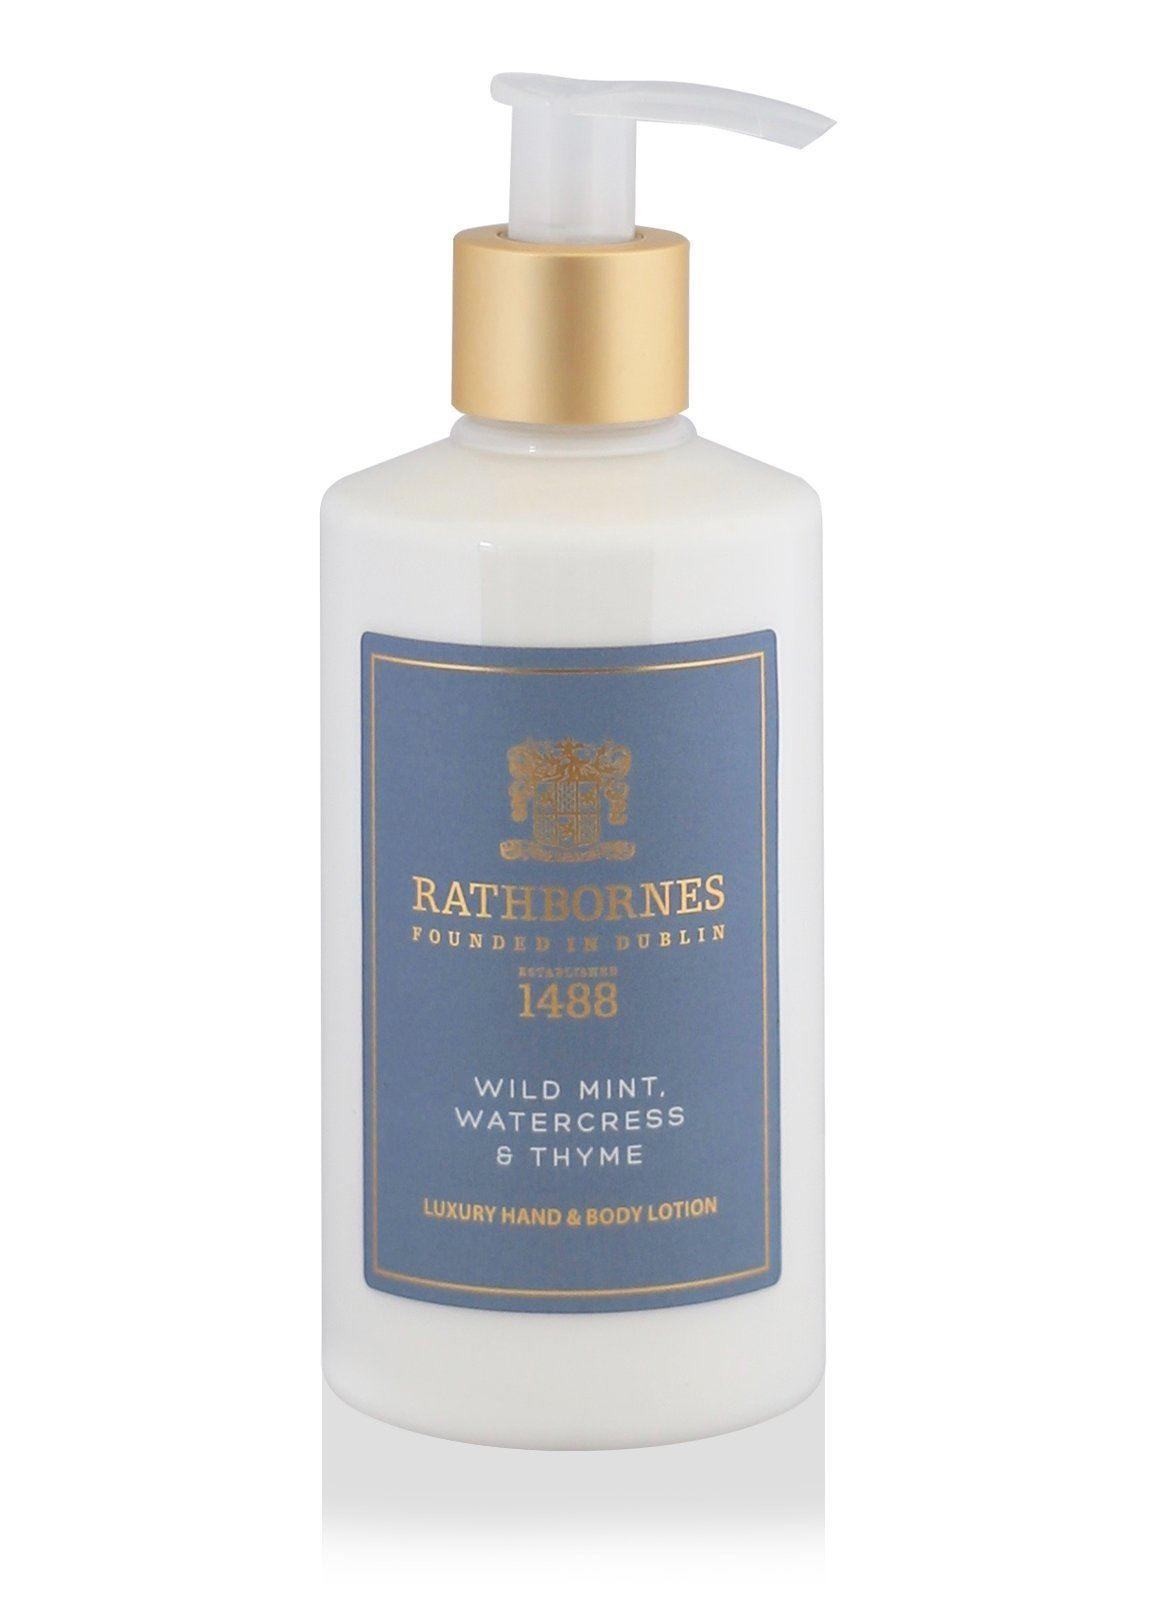 Rathbornes 1488 Wild Mint, Watercress and Thyme Hand & Body Lotion